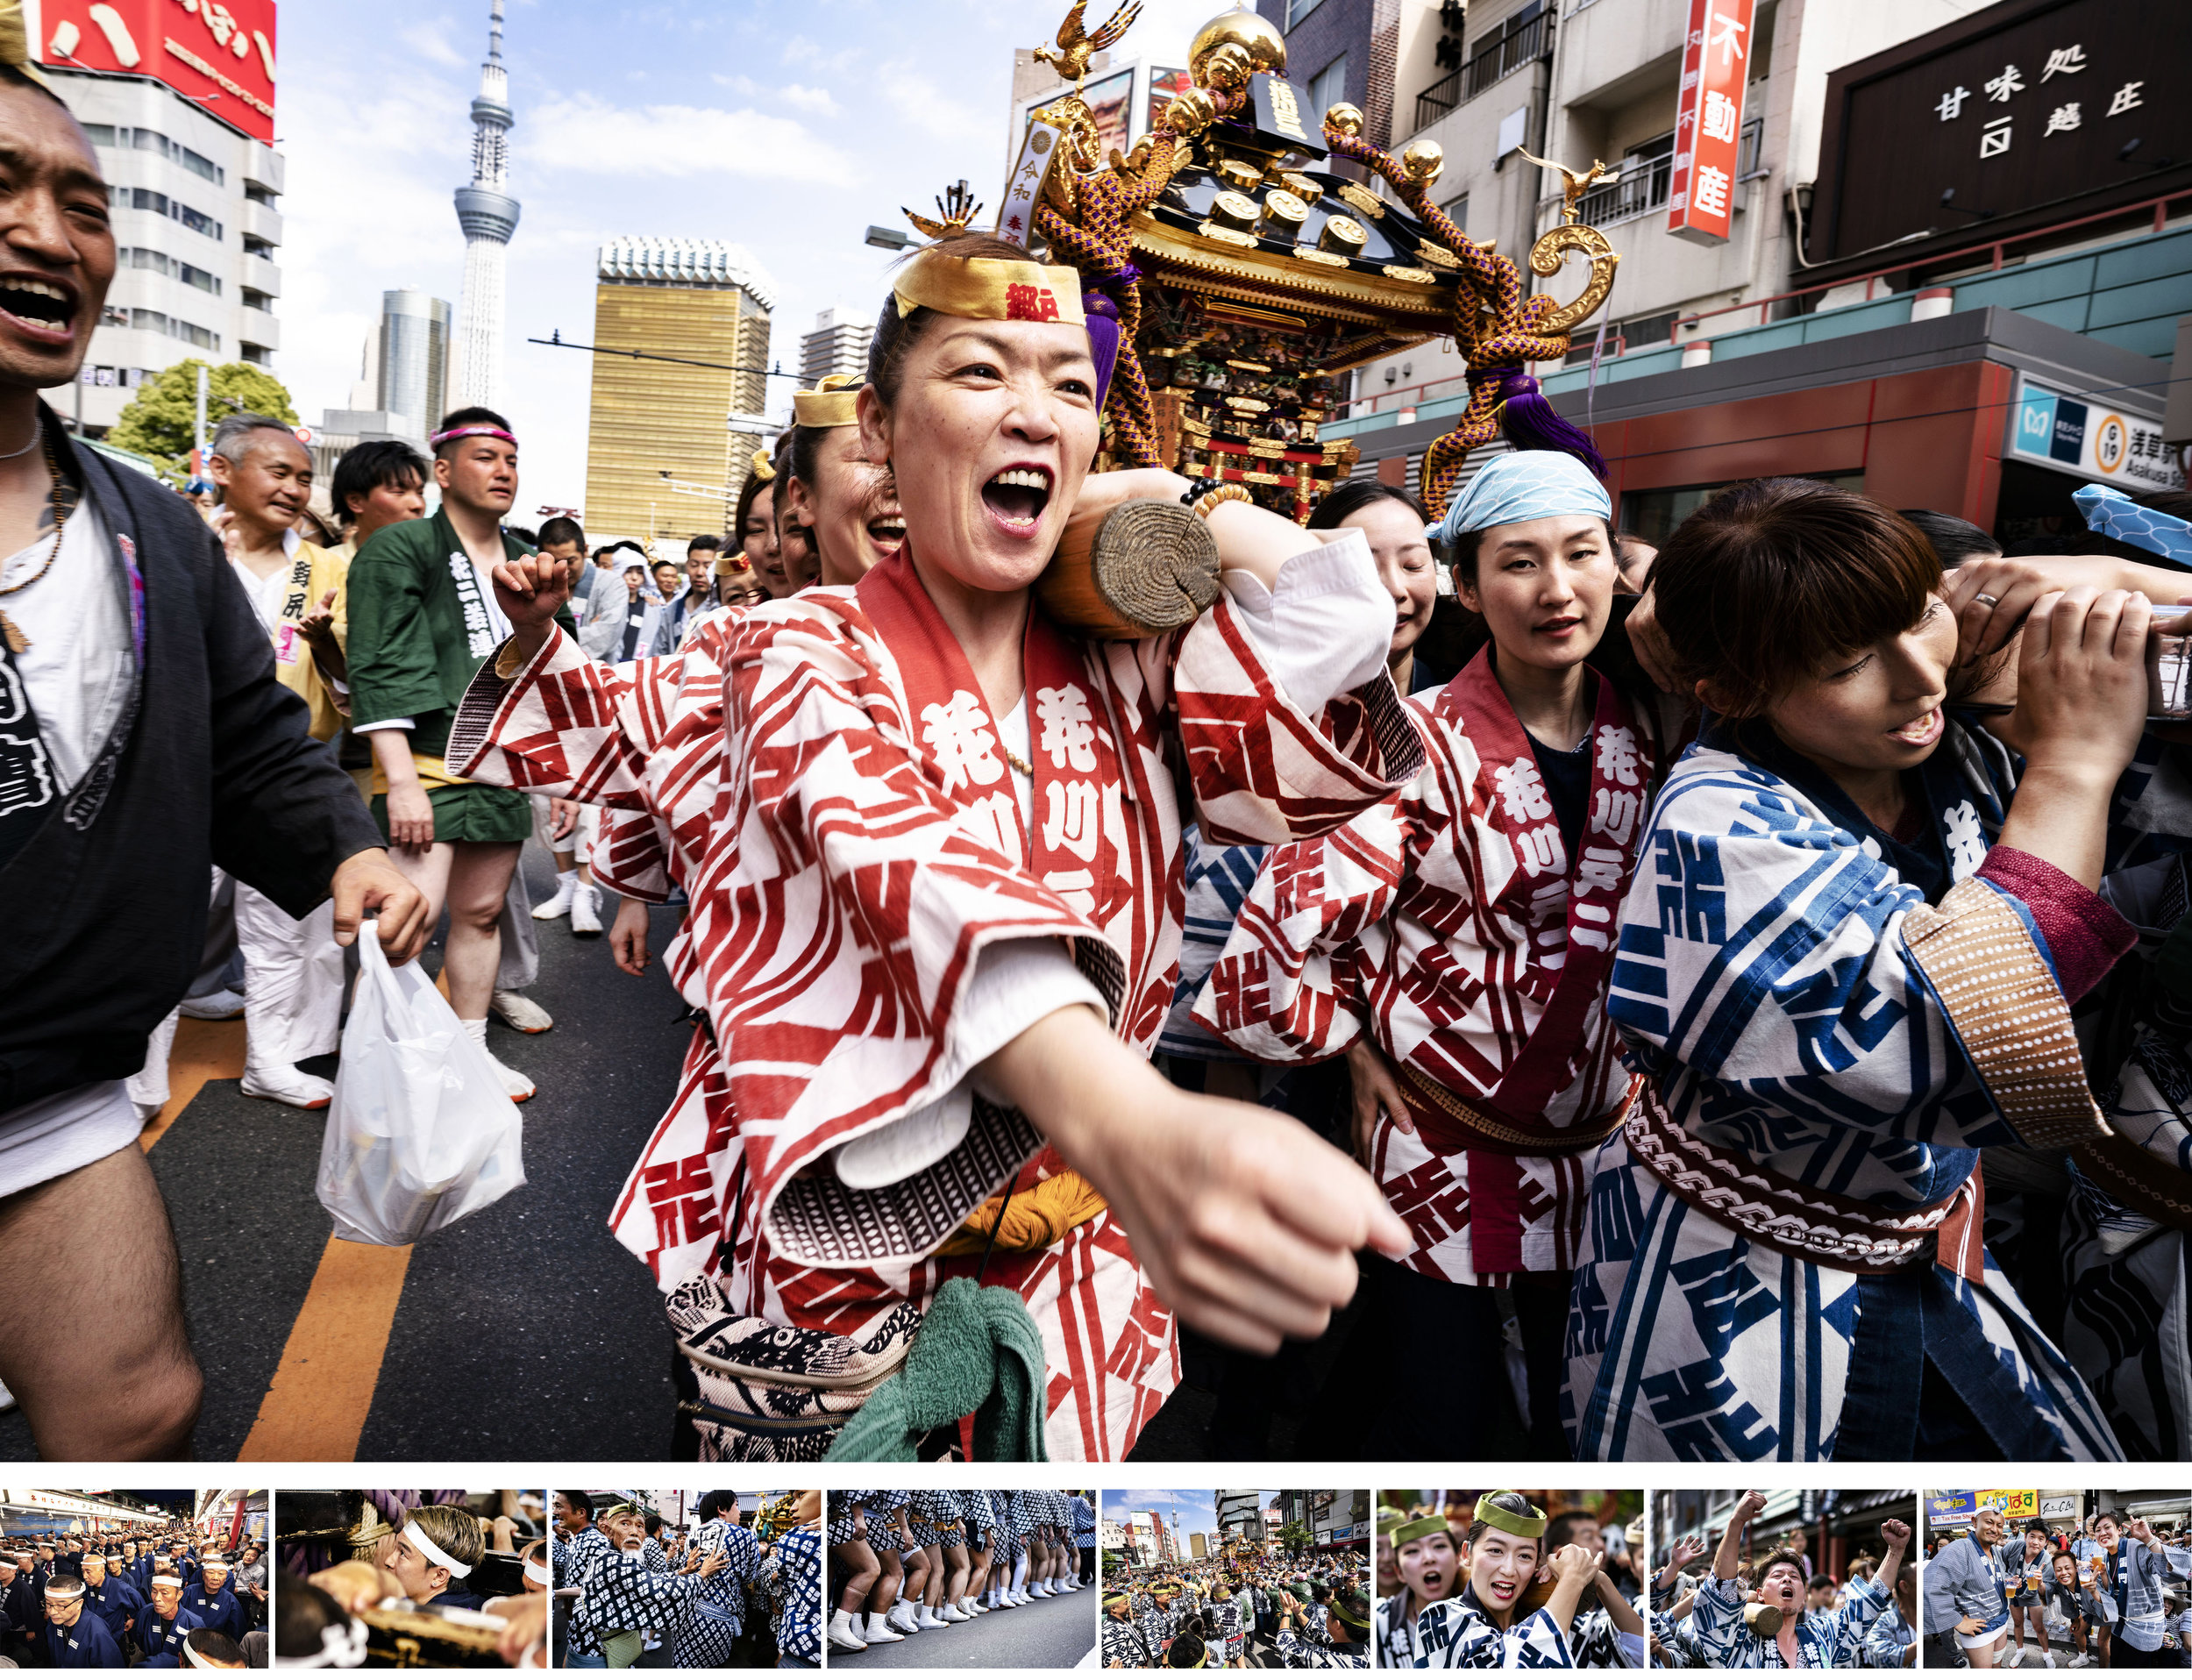 Sanja Matsuri - Photographic DocumentaryMedia: StillsThe Sanja Festival (三社祭, Sanja Matsuri) is an annual festival in the Asakusa district. It is a celebration of the three founders of Sensoji Temple, who are enshrined in the Asakusa Shrine. The Matsuri features almost one hundred Mikoshi (portable shrines) in which Kami (Shinto Gods) are paraded about the streets to bring good fortune to the local businesses and residents.